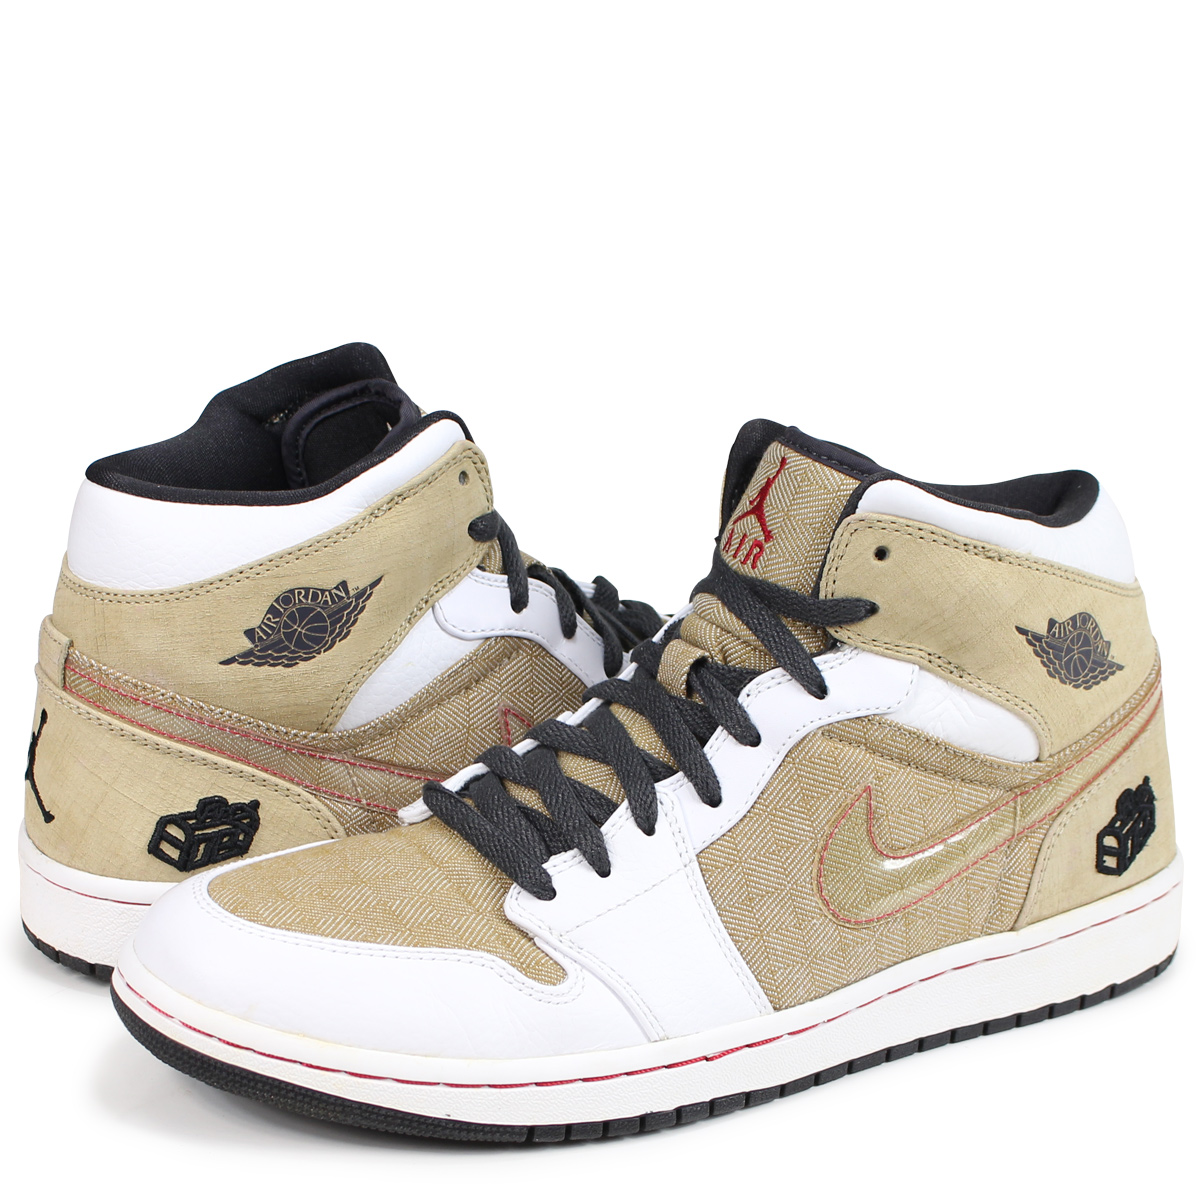 new style ec51e 98449 NIKE AIR JORDAN 1 RETRO FATHERS DAY Nike Air Jordan 1 nostalgic sneakers  men 325,514-101 beige [189]